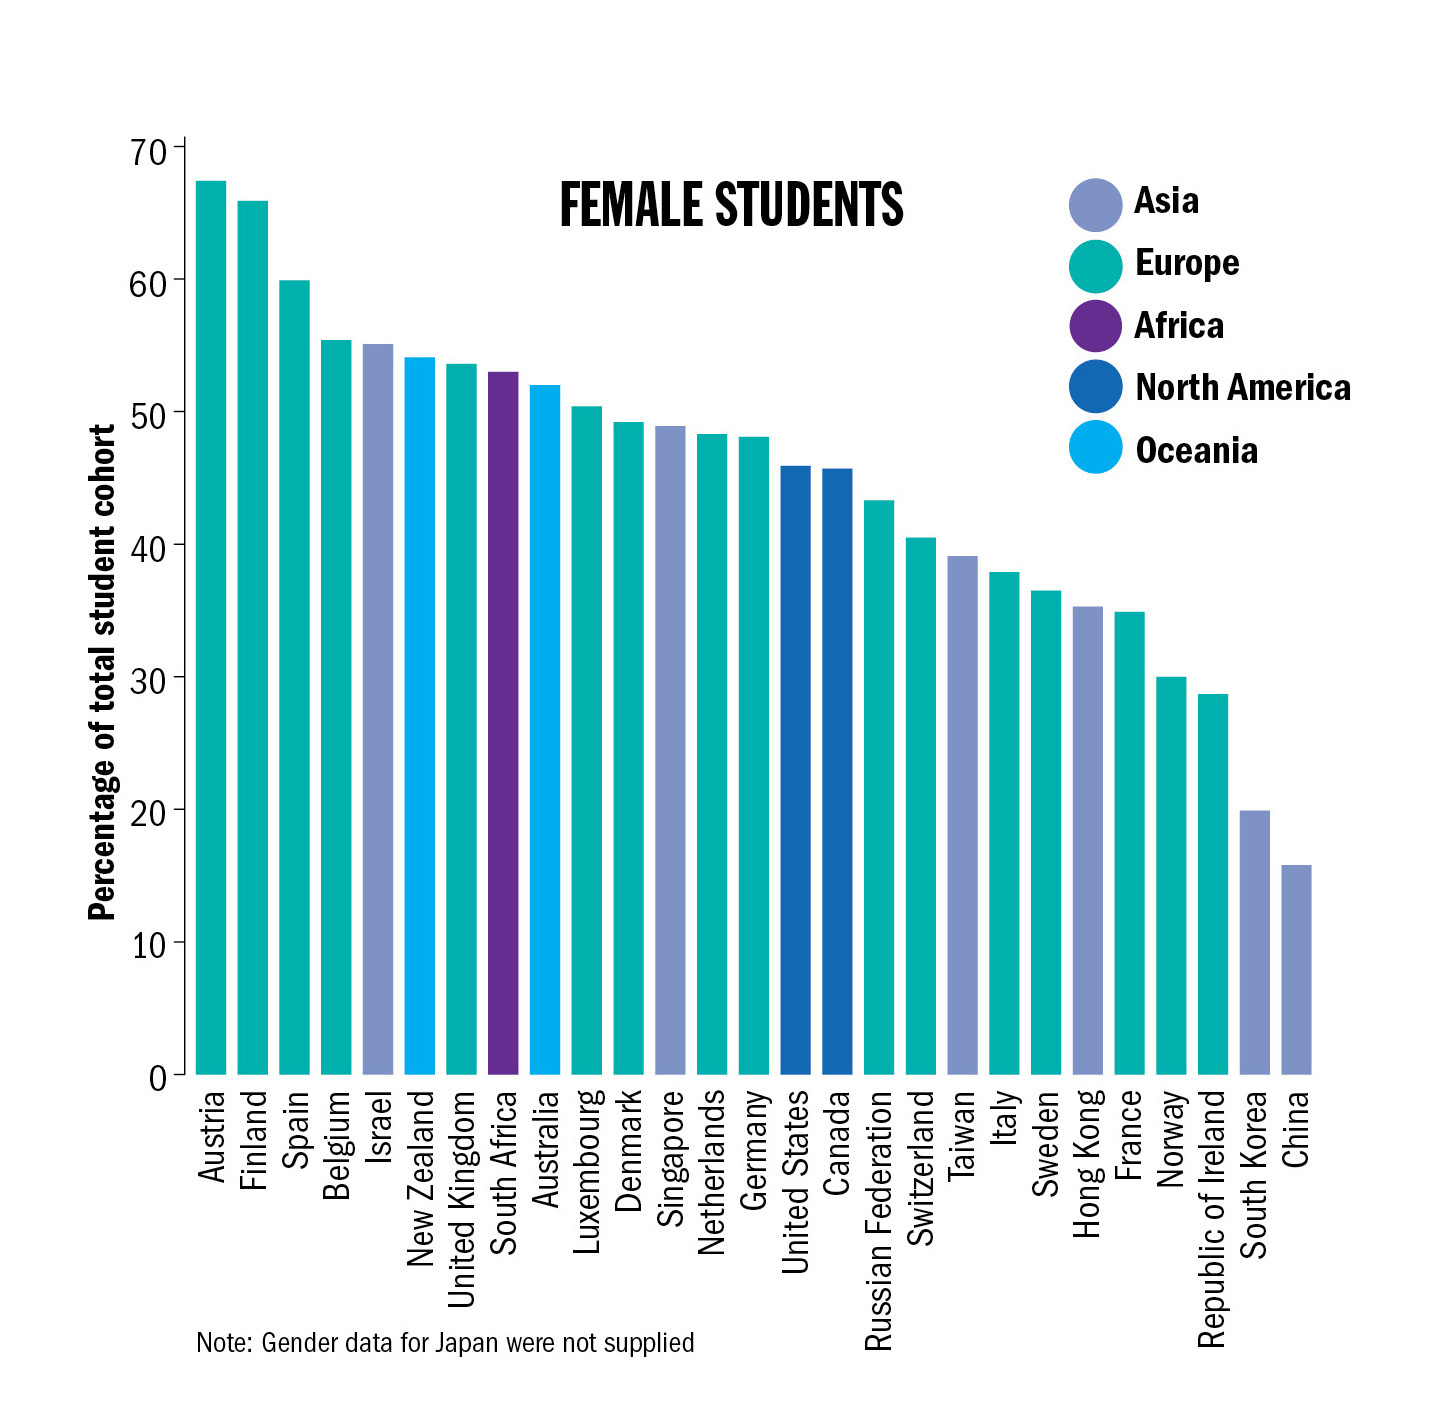 Italy Design University Ranking Eight World Leading Universities With A 50 50 Gender